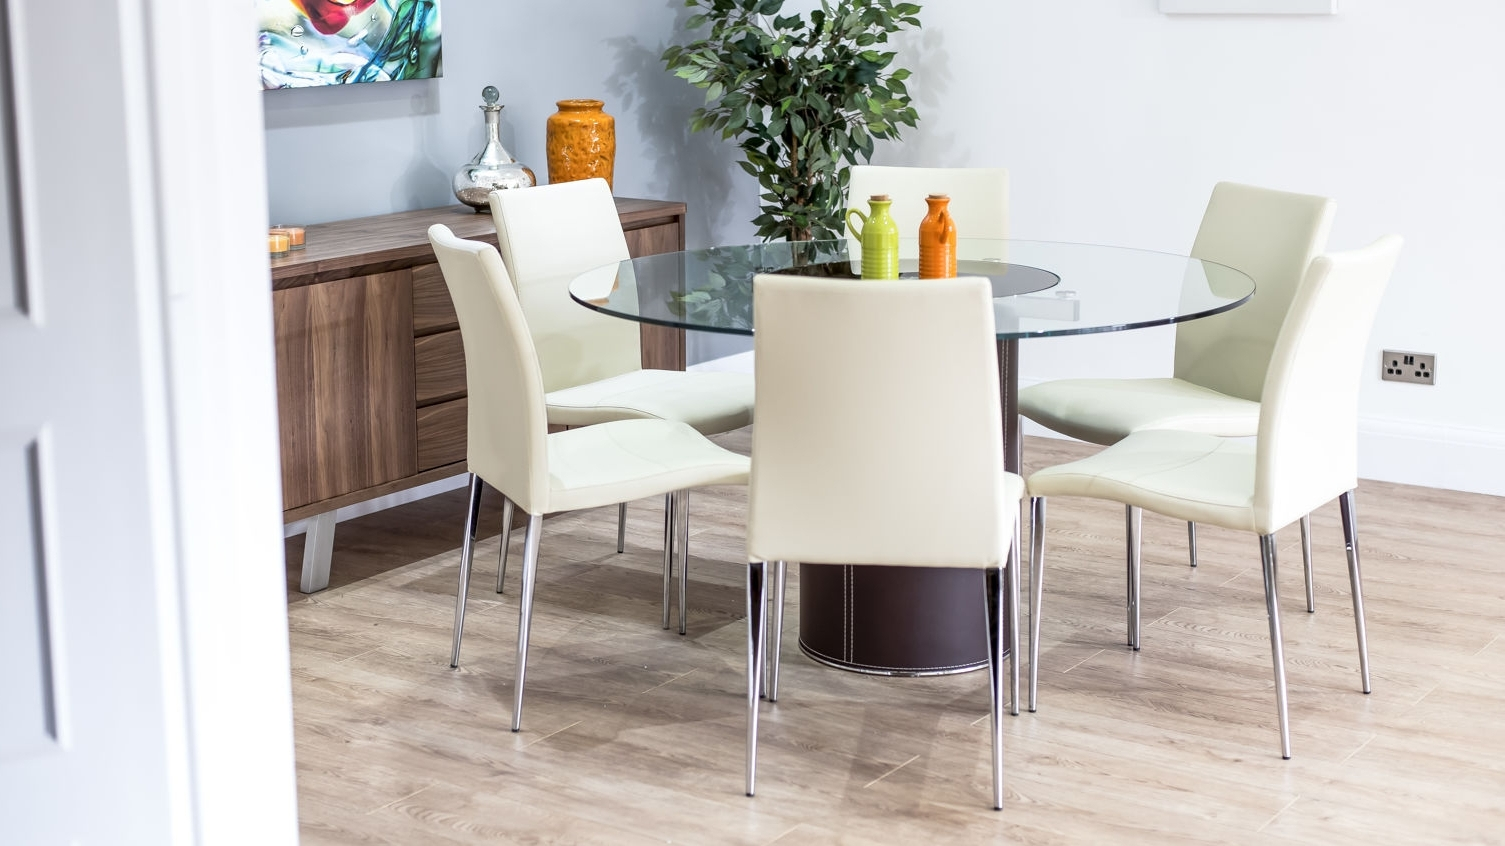 6 Seater Round Dining Table Sets • Table Setting Design Throughout Most Recent 6 Seater Round Dining Tables (Gallery 1 of 25)